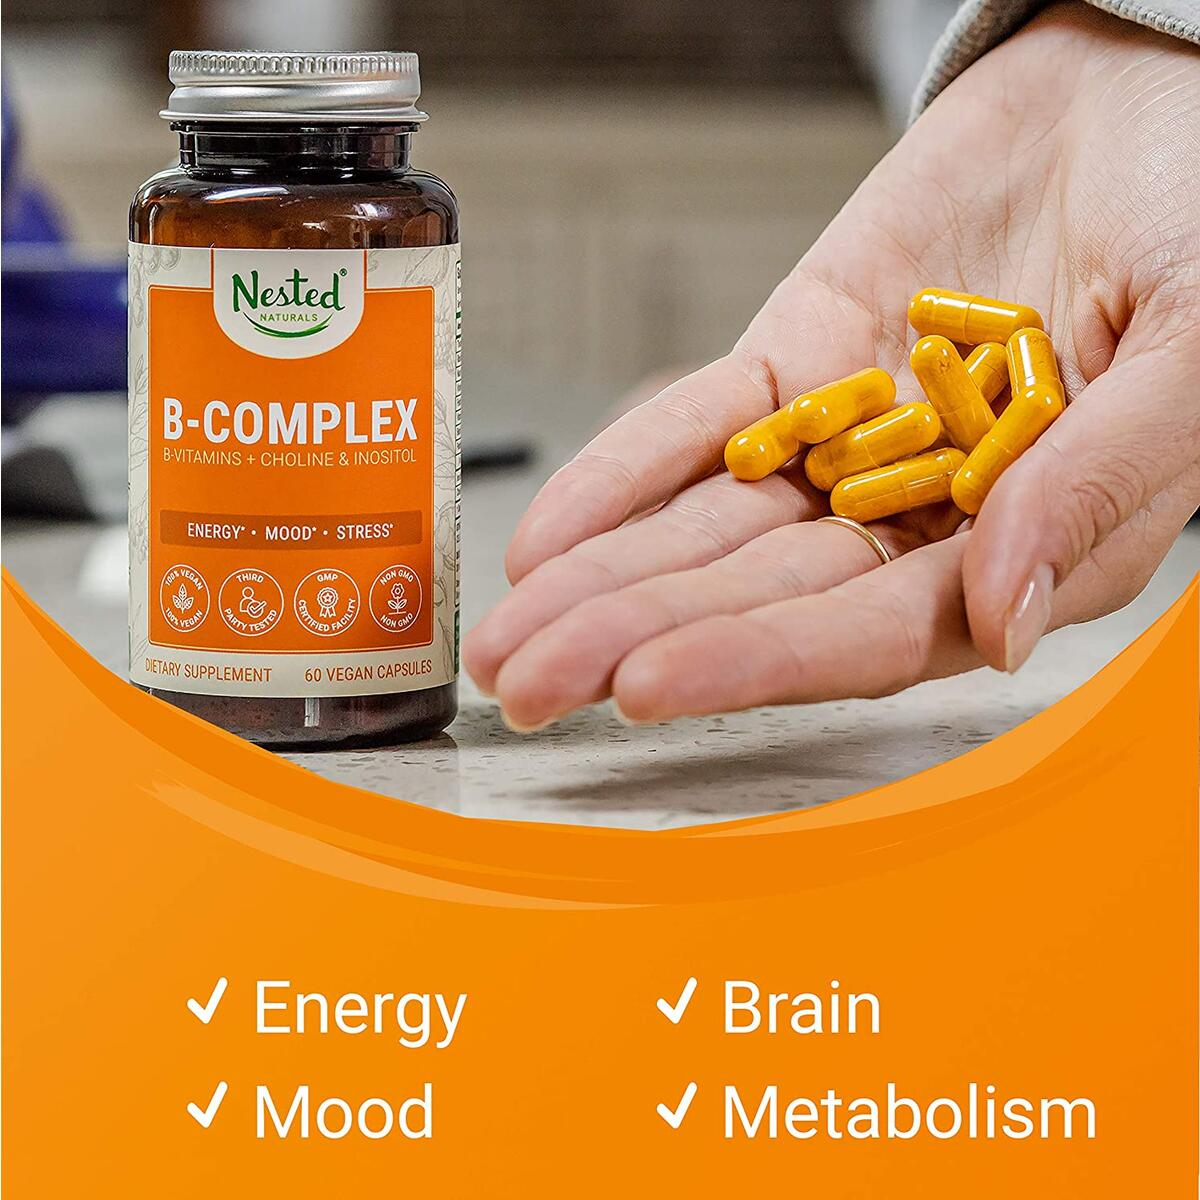 Nested Naturals Vegan B-Complex Vitamins Plus Choline & Inositol | Energy, Immunity & Metabolism Booster